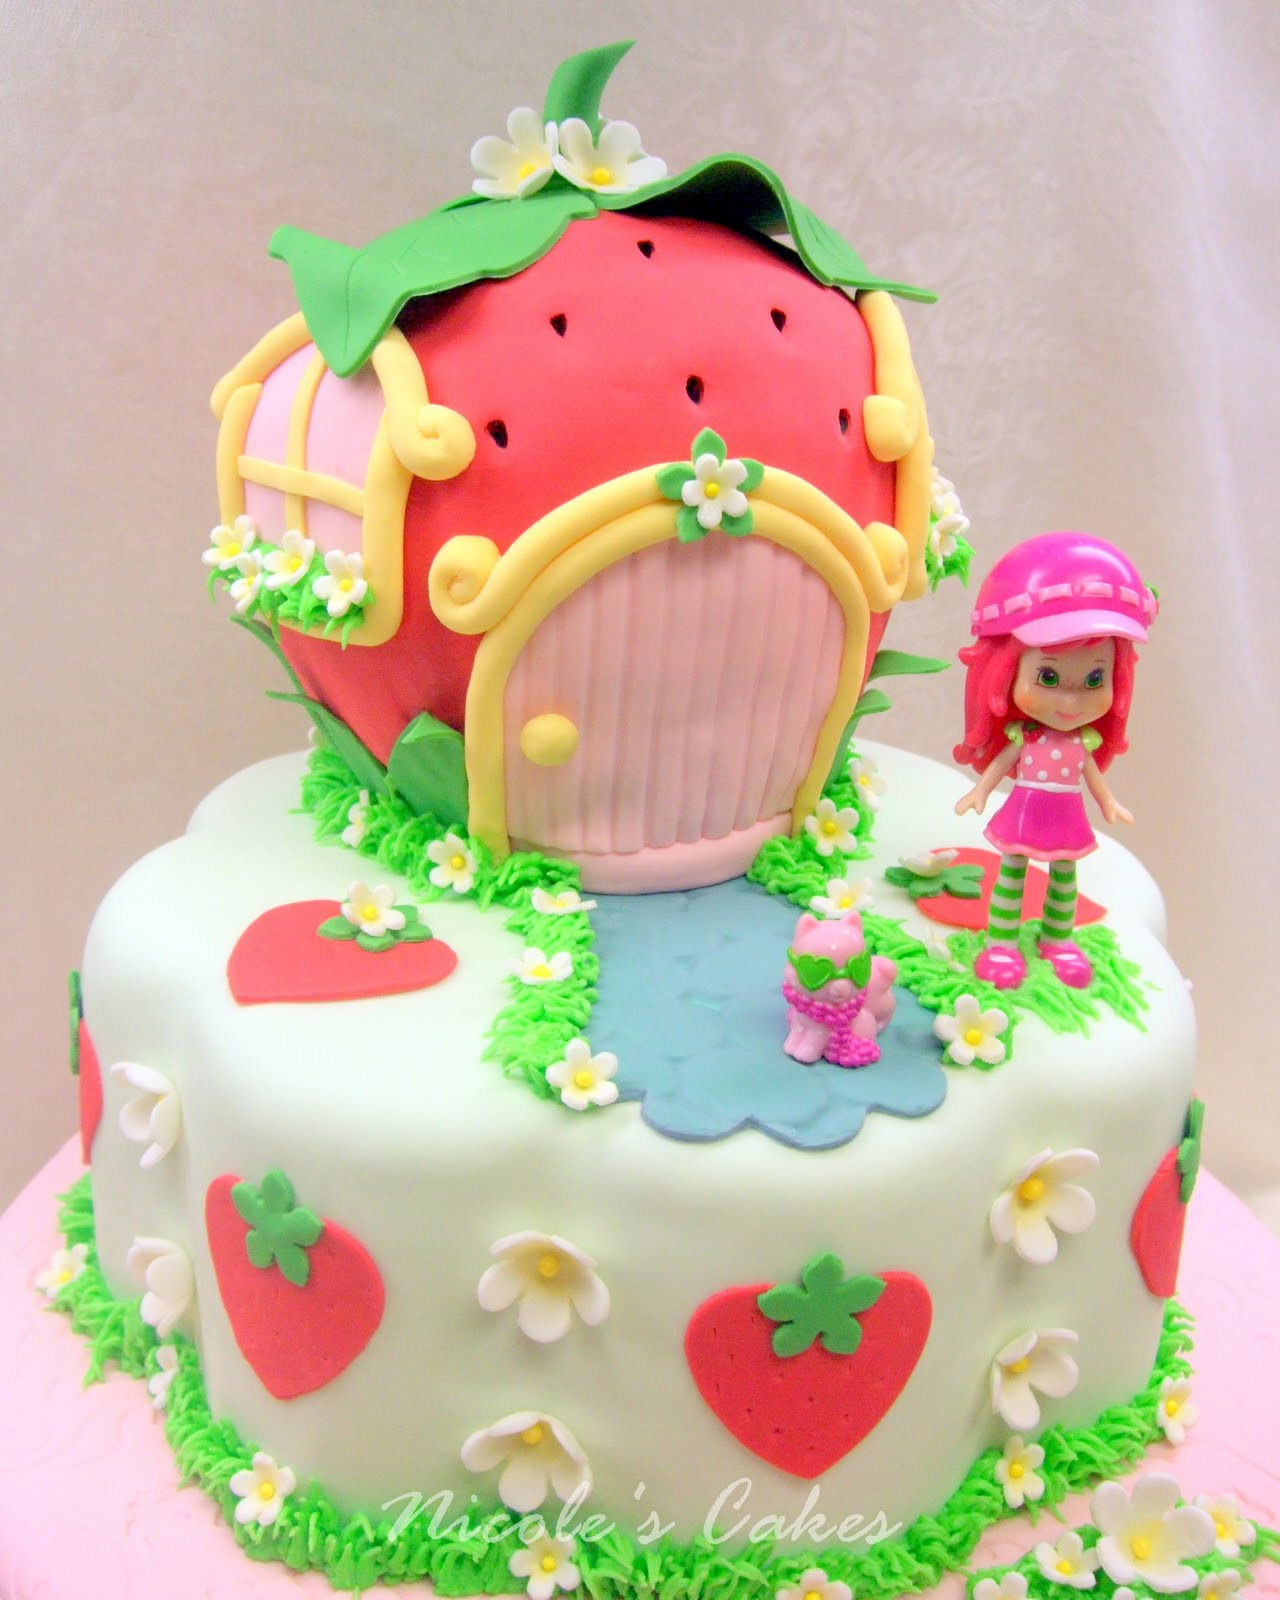 this adorable strawberry house is hand sculpted from a strawberry